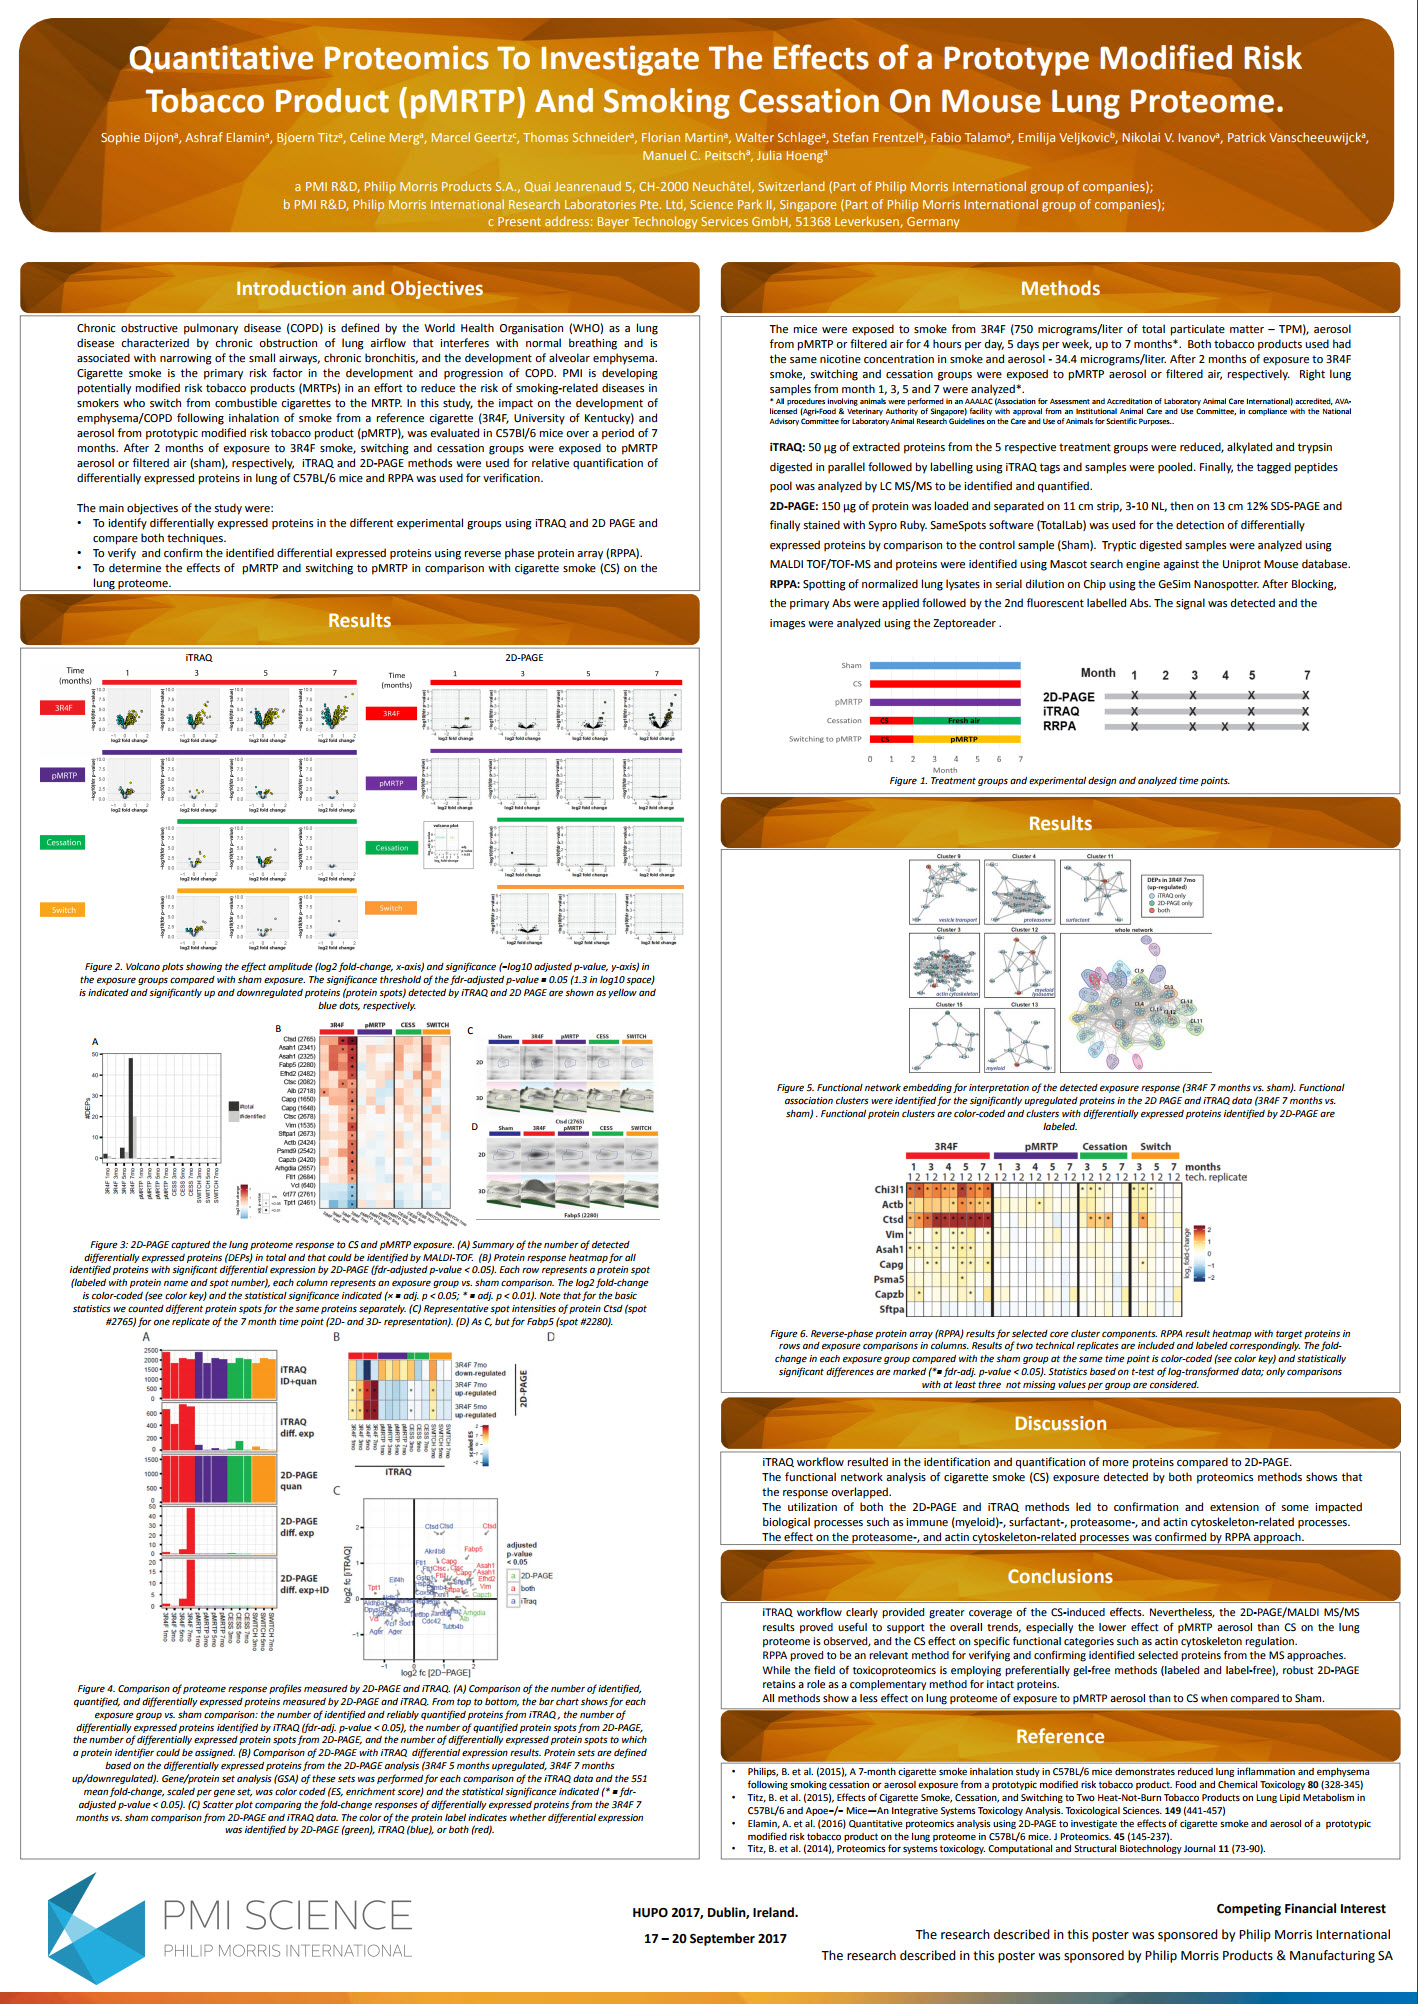 HUPO 2017 Dijon Quantitative proteomics to investigate the effects of a prototype modified risk tobacco product (pMRTP) Screenshot